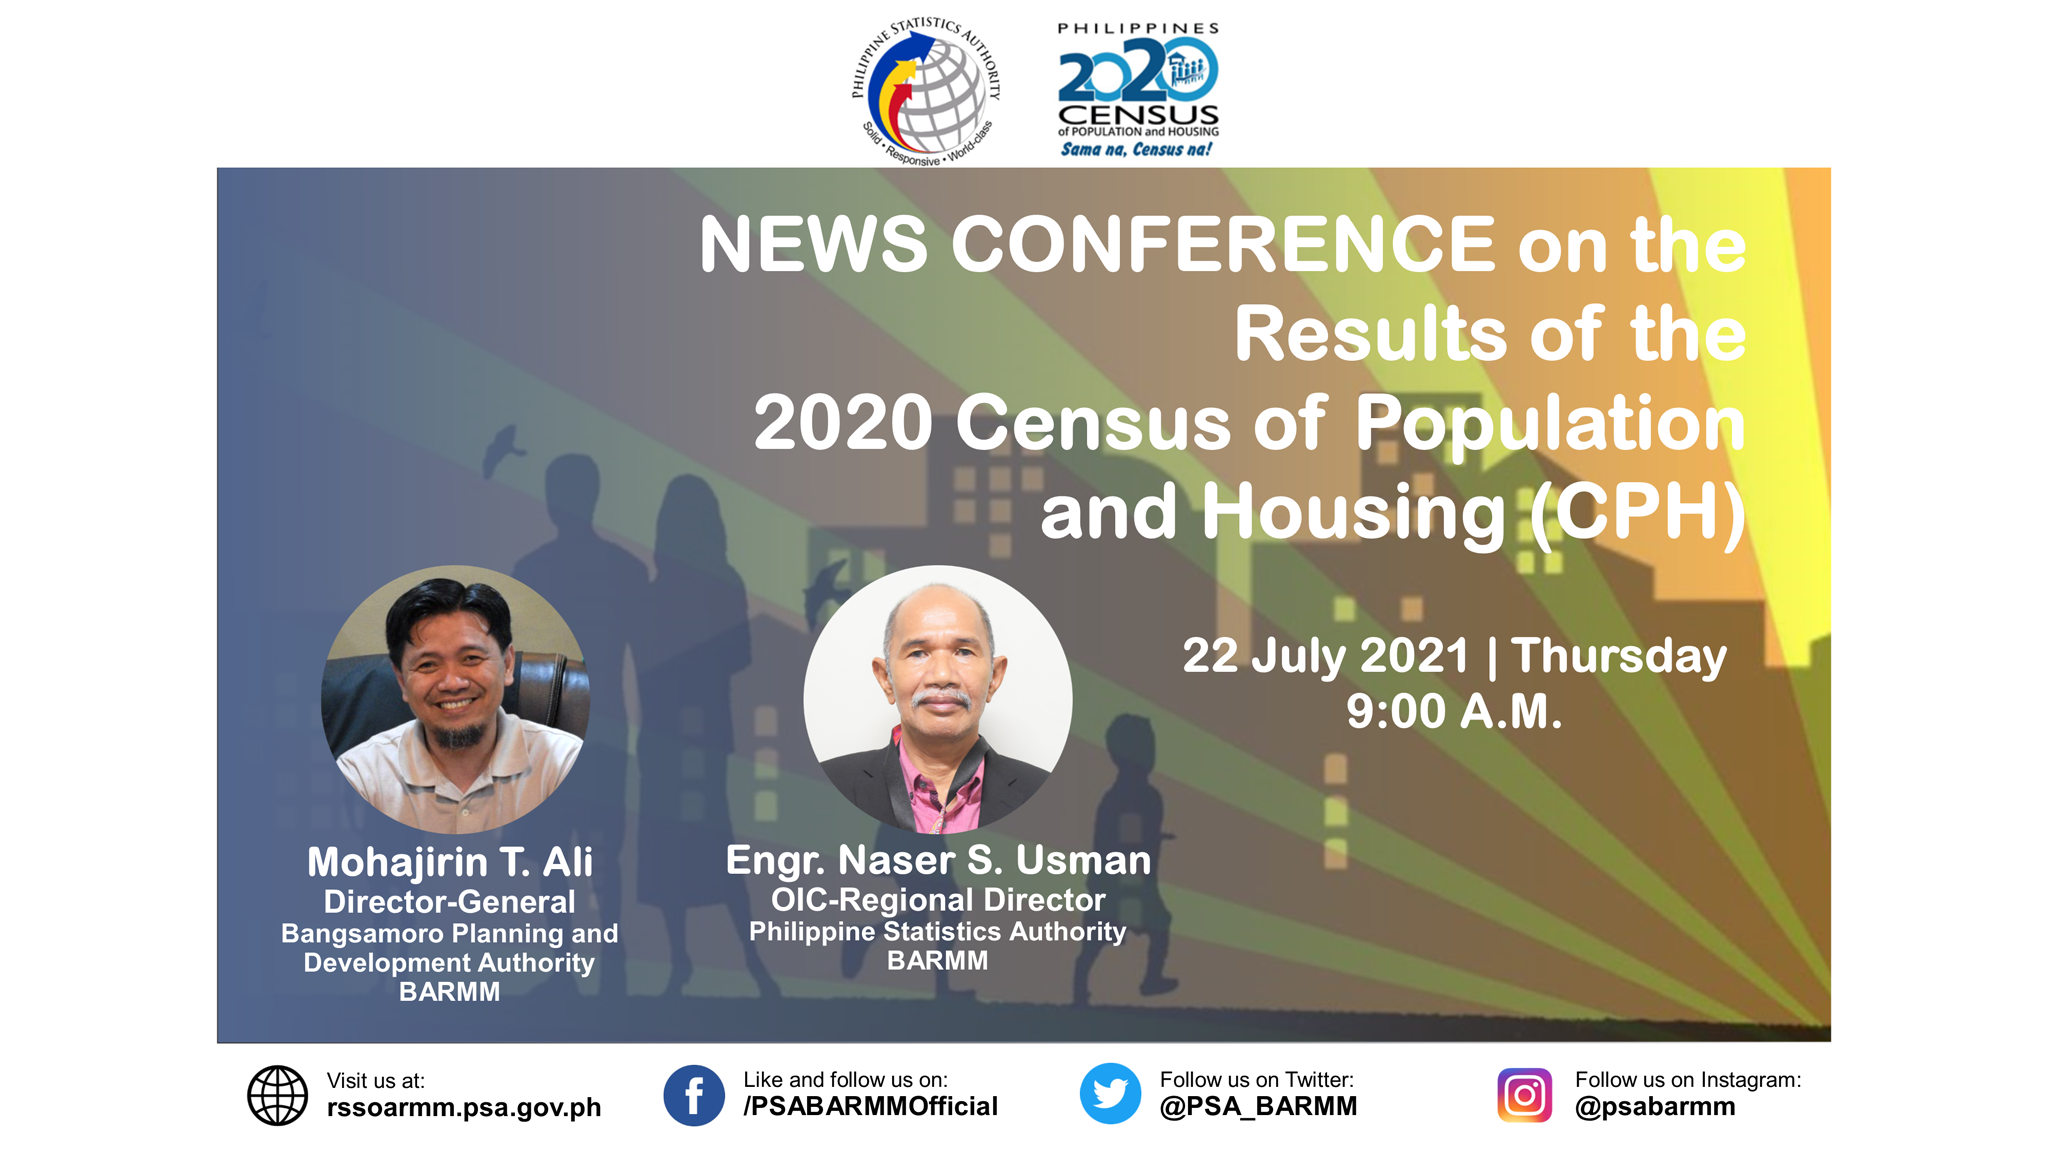 News Conference on the Results of the 2020 Census of Population and Housing